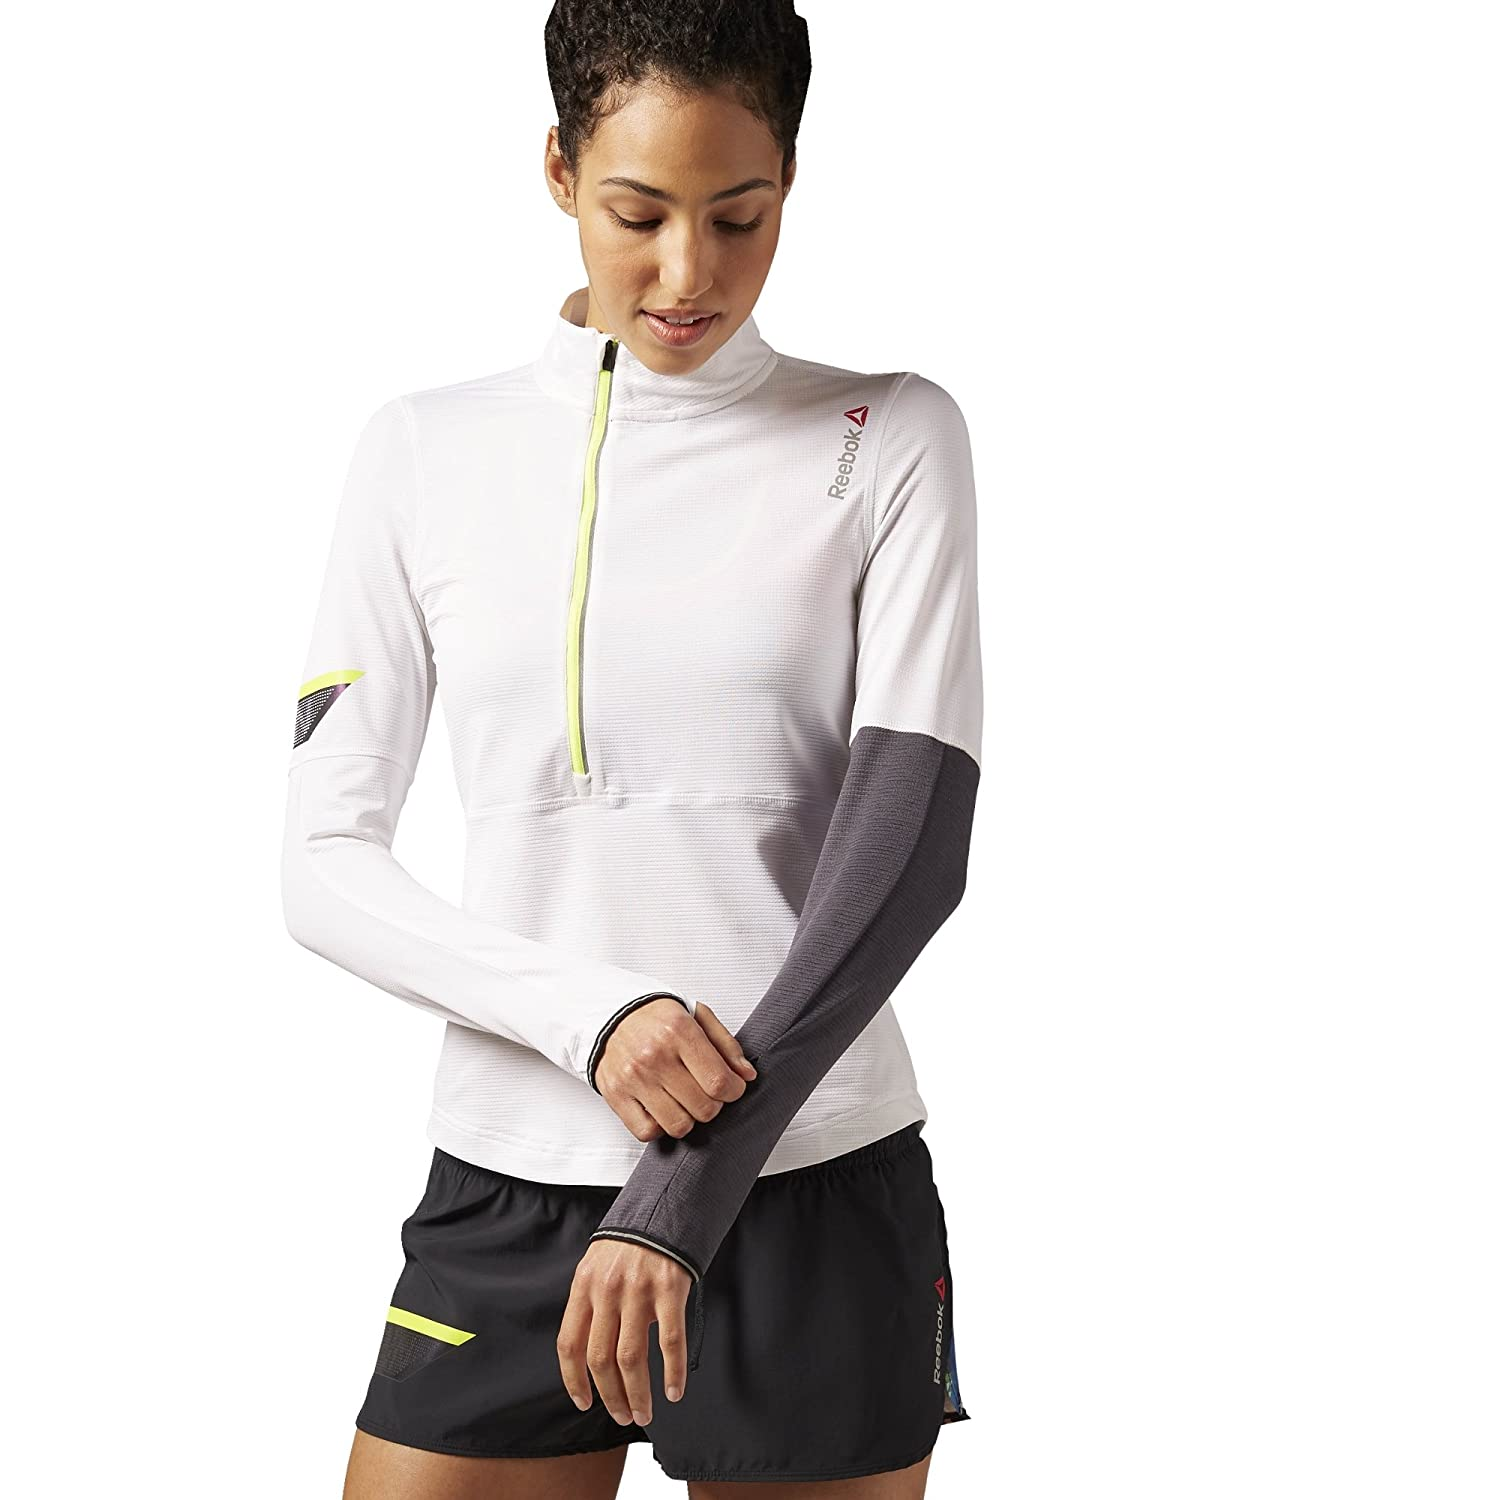 Reebok Damen Shirt ONE Series Running Long Sleeve 1/4 Zip Top